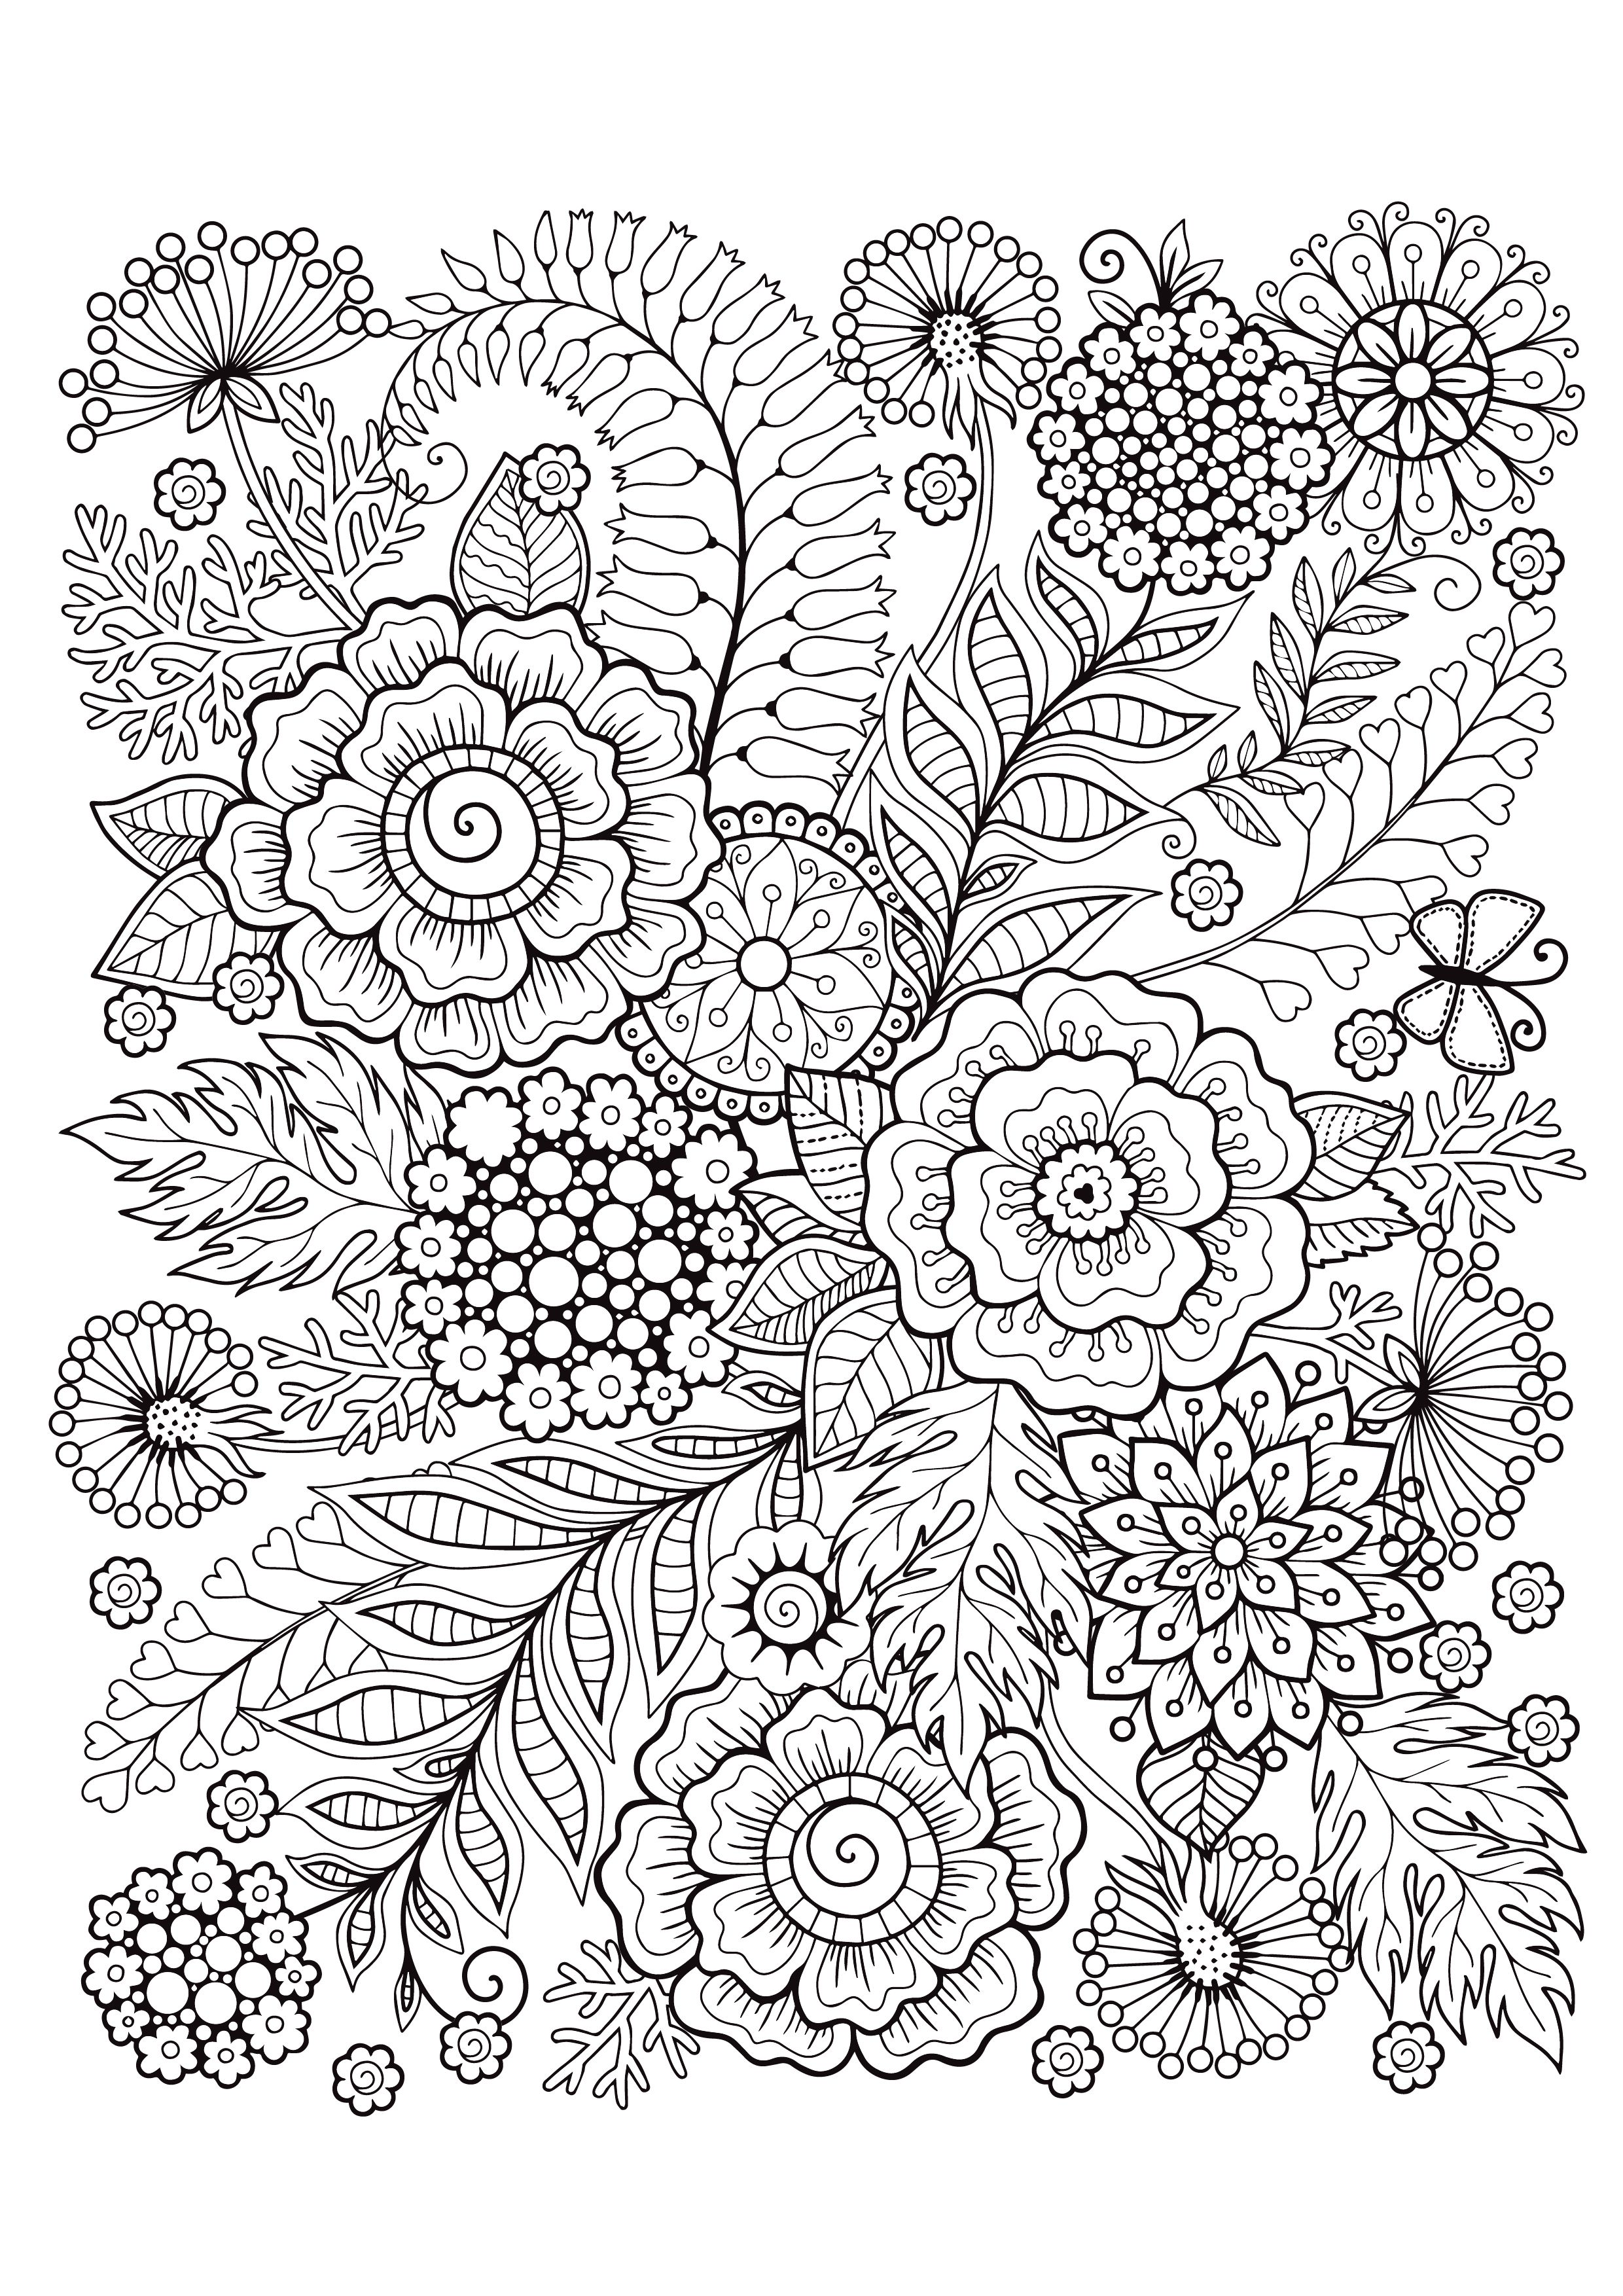 Mindfulness Coloring Coloring Book Art Mindfulness Colouring Coloring Pages